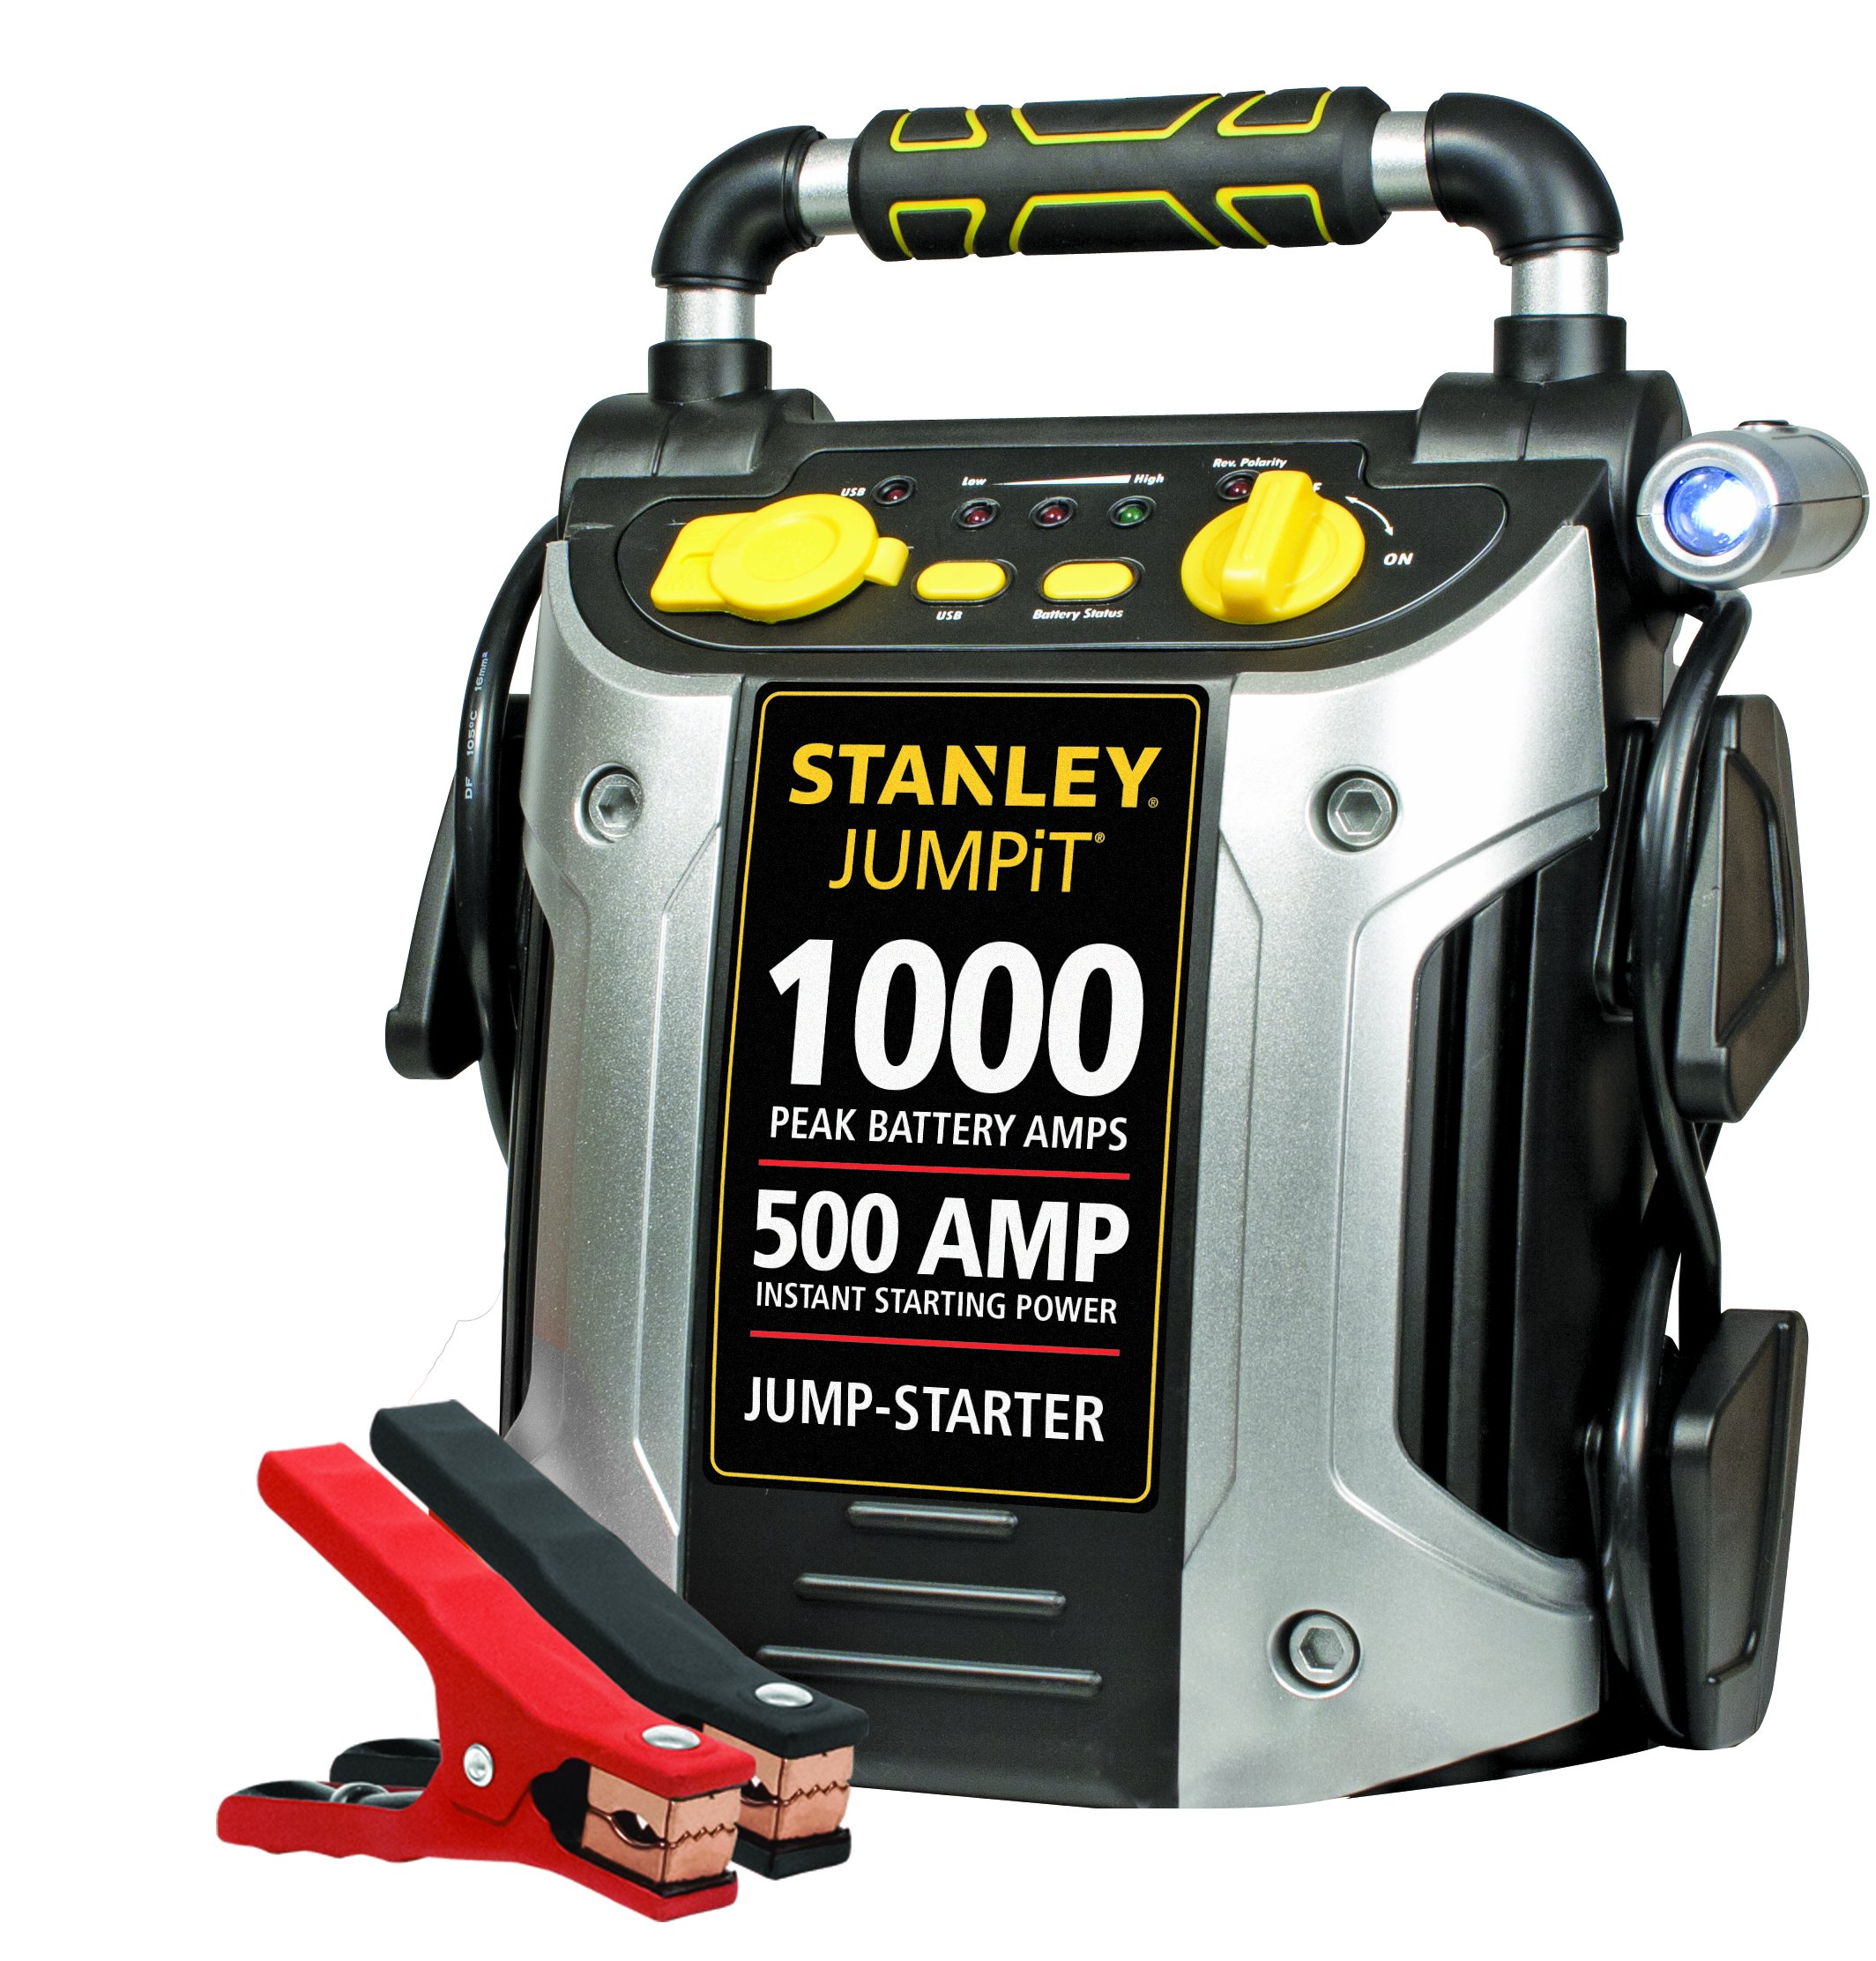 STANLEY J509 Jump Starter: 1000 Peak/500 Instant Amps by STANLEY